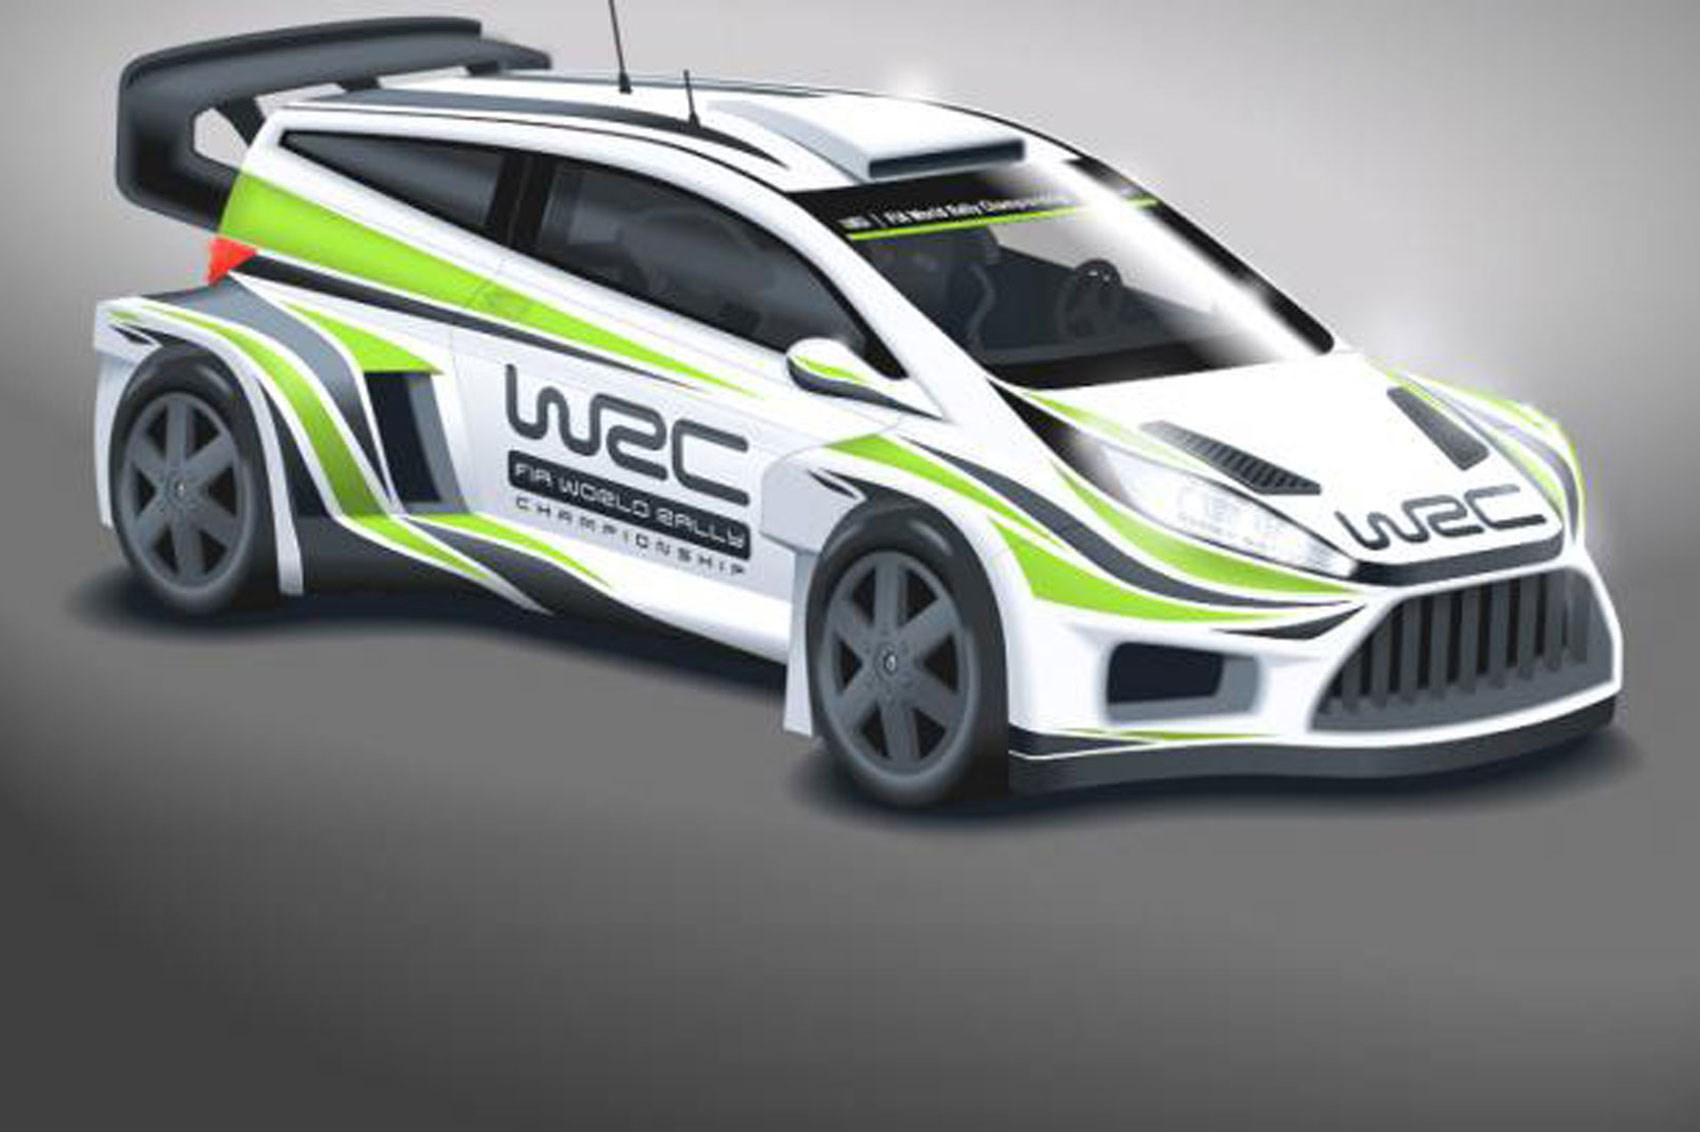 Ultrablogus  Sweet Wild New Look For Wrc Cars In  By Car Magazine With Handsome Wrc Cars Will Get Wider Bodies Bigger Wings And More Power For  With Awesome Spark Chevrolet Interior Also Toyota Auris Interior In Addition Interior Porsche Macan And A Class Mercedes Interior As Well As  Volvo Xc Interior Additionally Ford Focus Estate Interior From Carmagazinecouk With Ultrablogus  Handsome Wild New Look For Wrc Cars In  By Car Magazine With Awesome Wrc Cars Will Get Wider Bodies Bigger Wings And More Power For  And Sweet Spark Chevrolet Interior Also Toyota Auris Interior In Addition Interior Porsche Macan From Carmagazinecouk